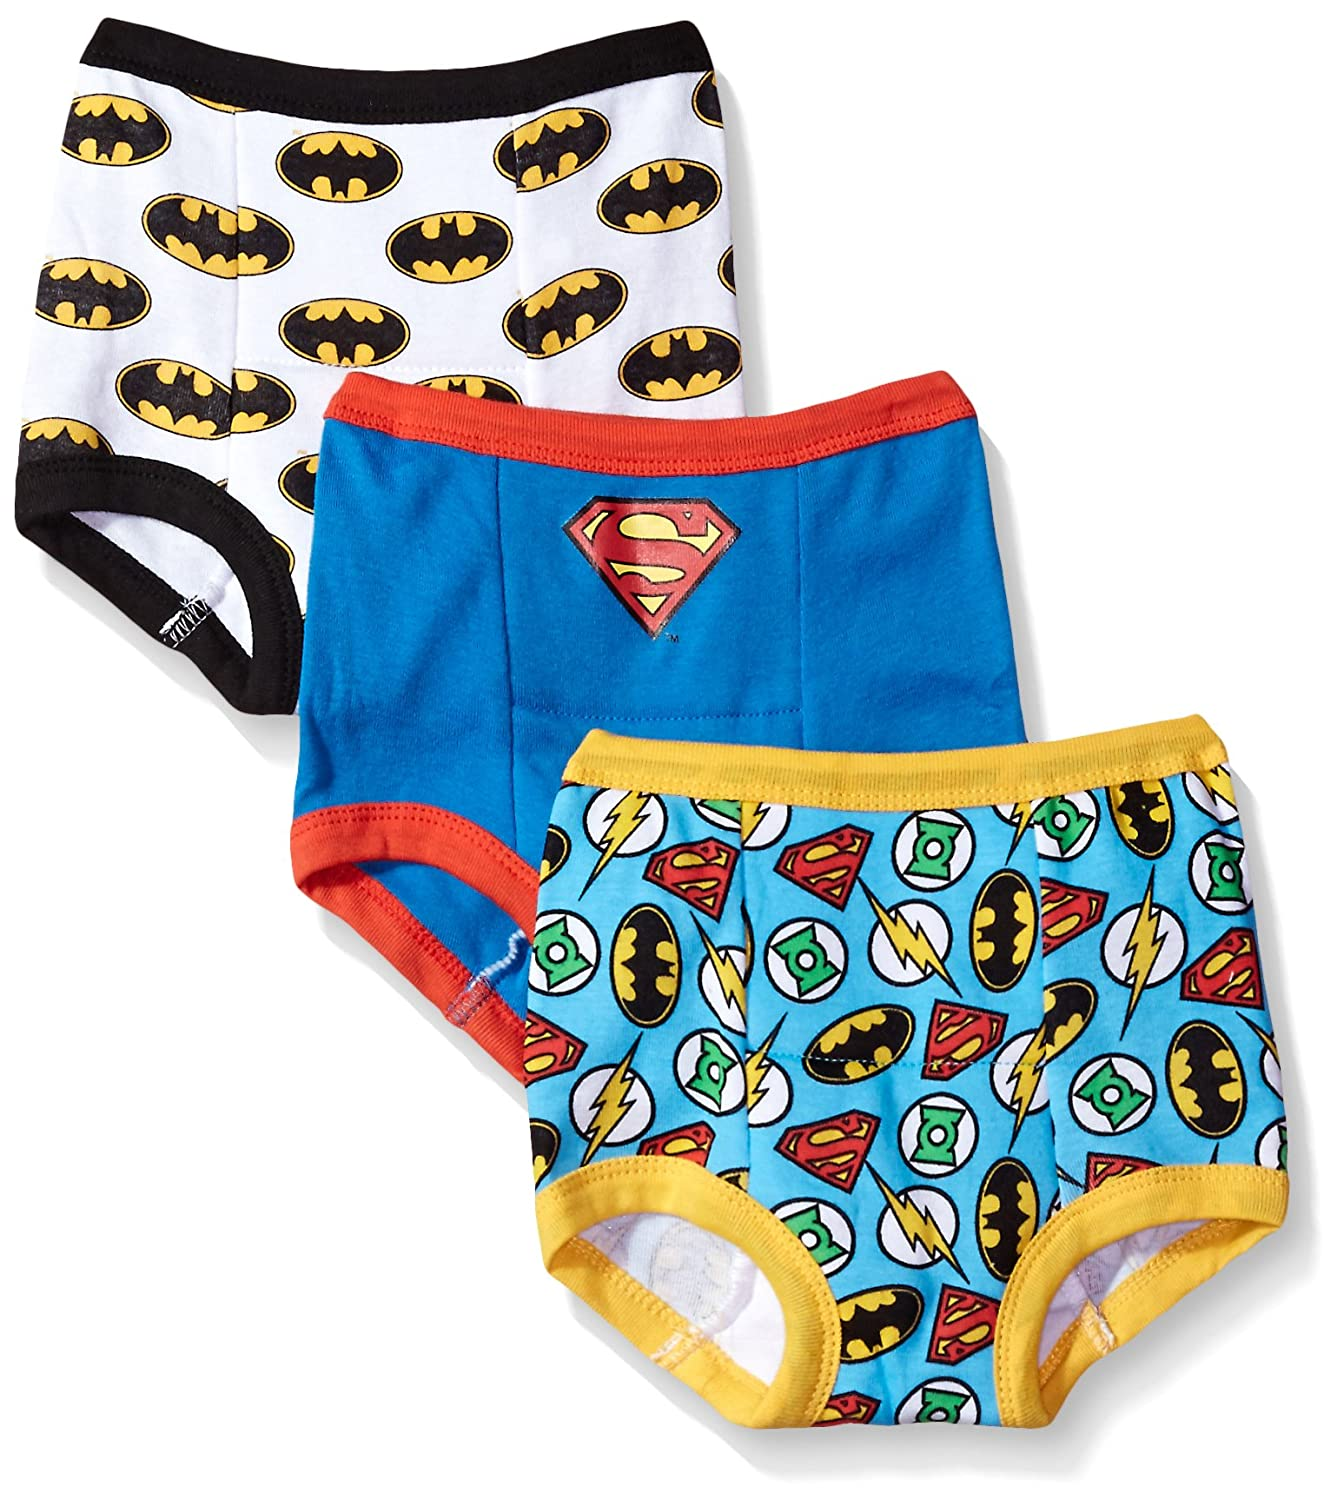 DC Comics Boys Toddler Boys Justice League Boy 3 Pack Training Pant JL Assorted Patterns 2T BTP1780